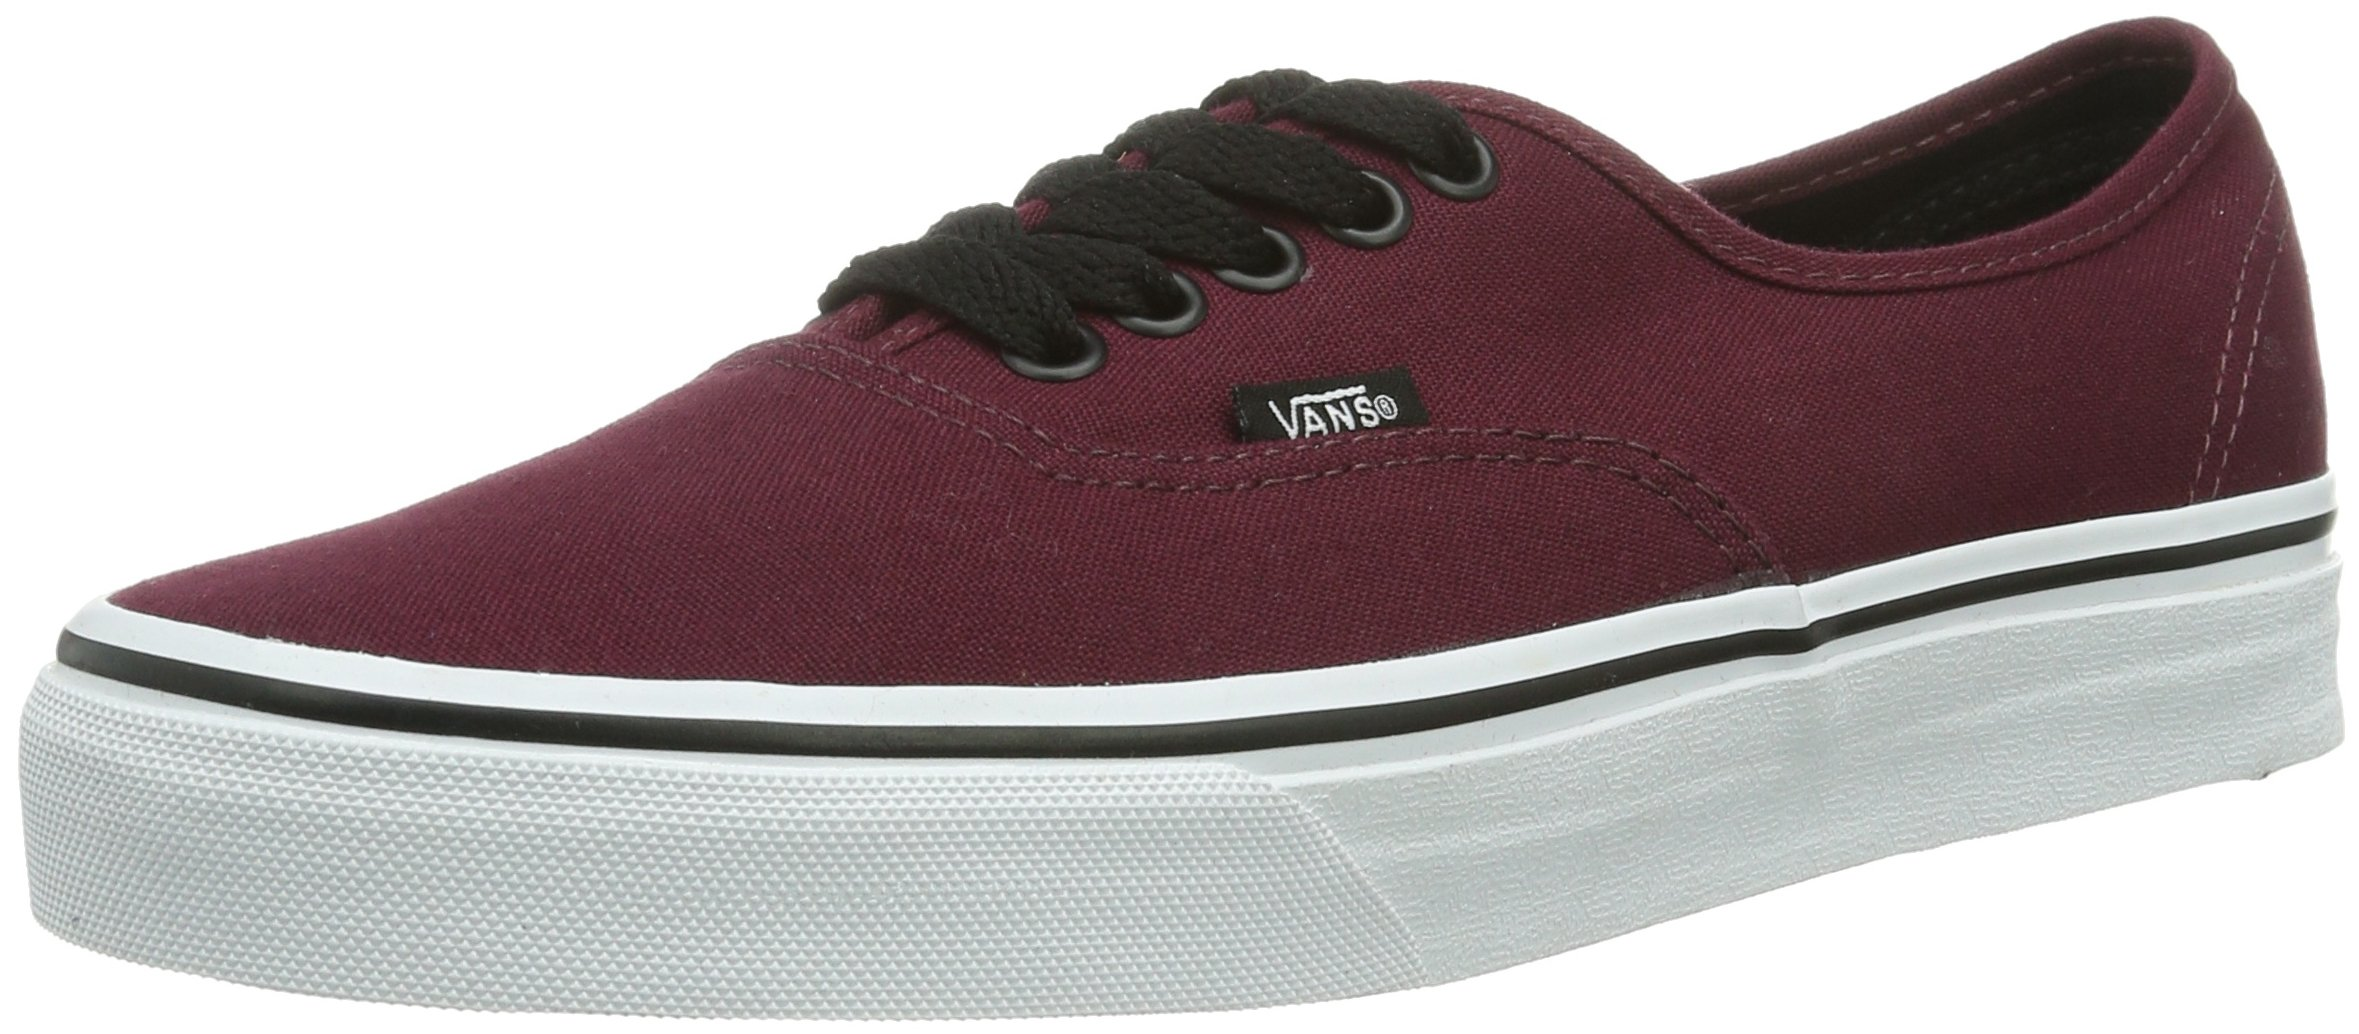 Vans Unisex's AUTHENTIC SKATE SHOES 11 (PORT ROYALE/BLACK)